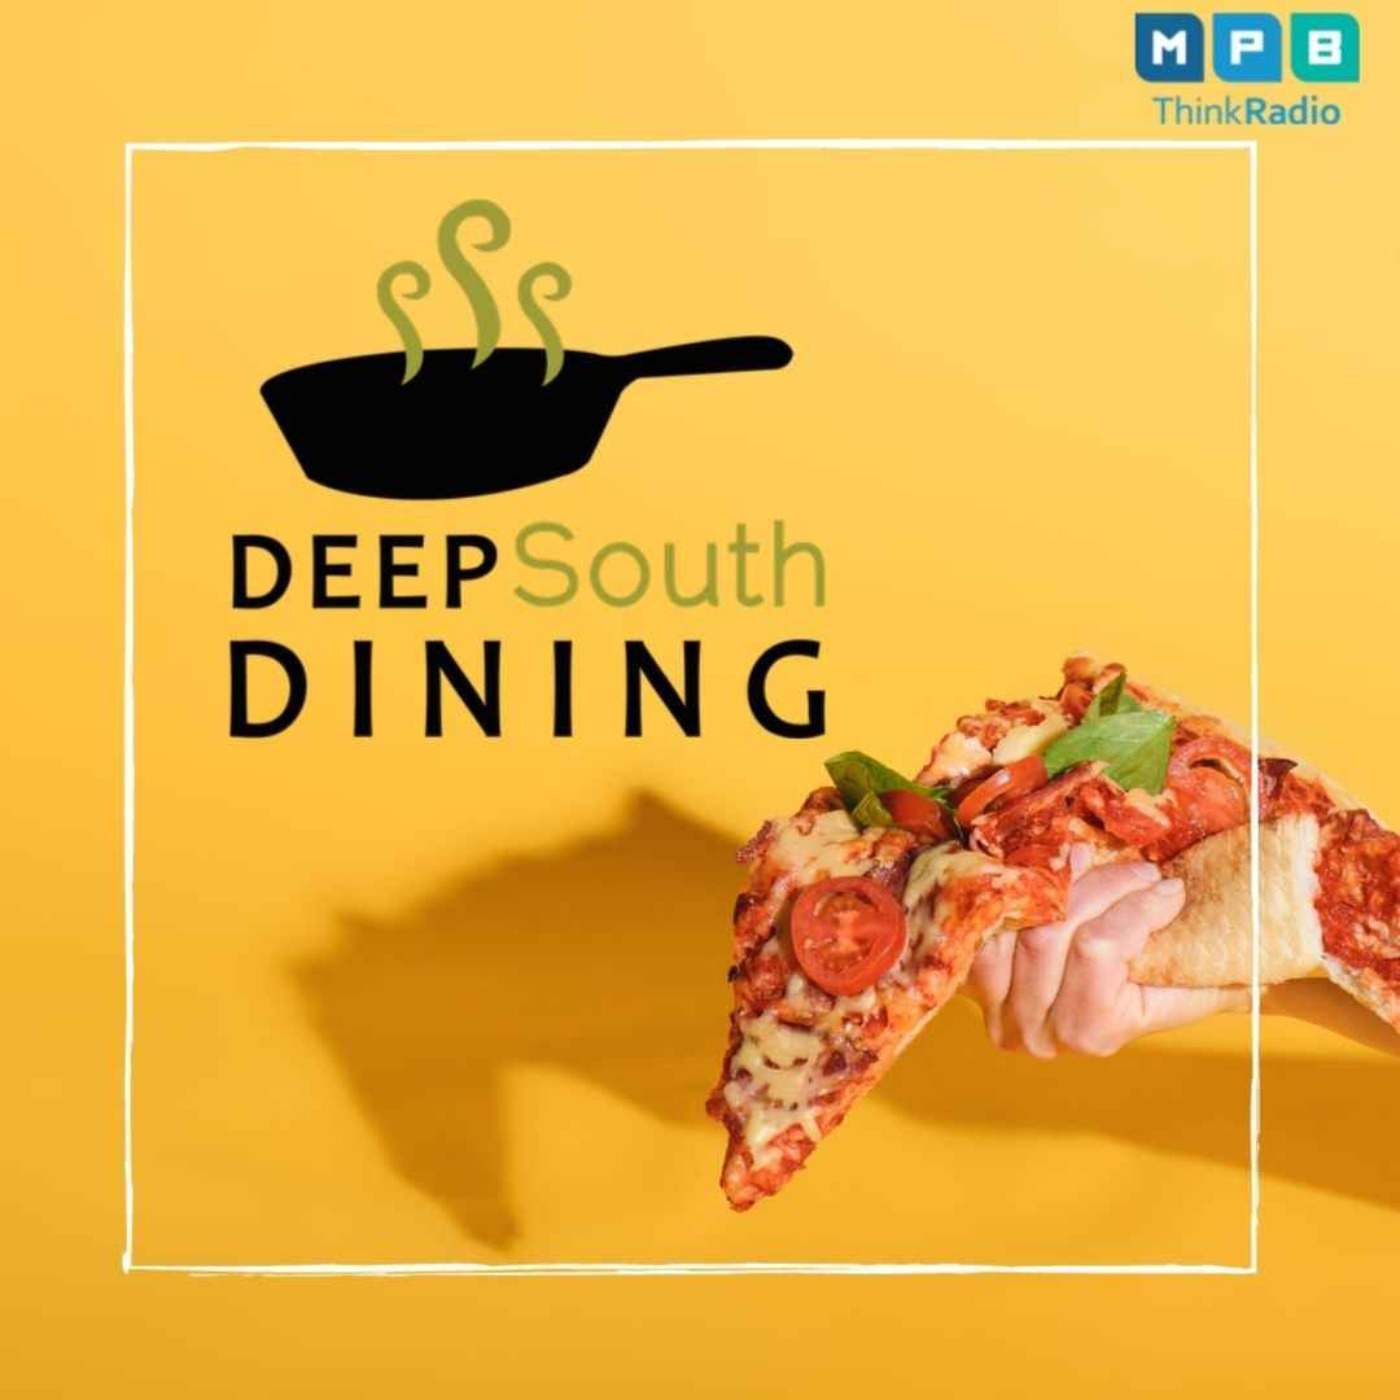 Deep South Dining | Pizza, Hush Puppies, and More